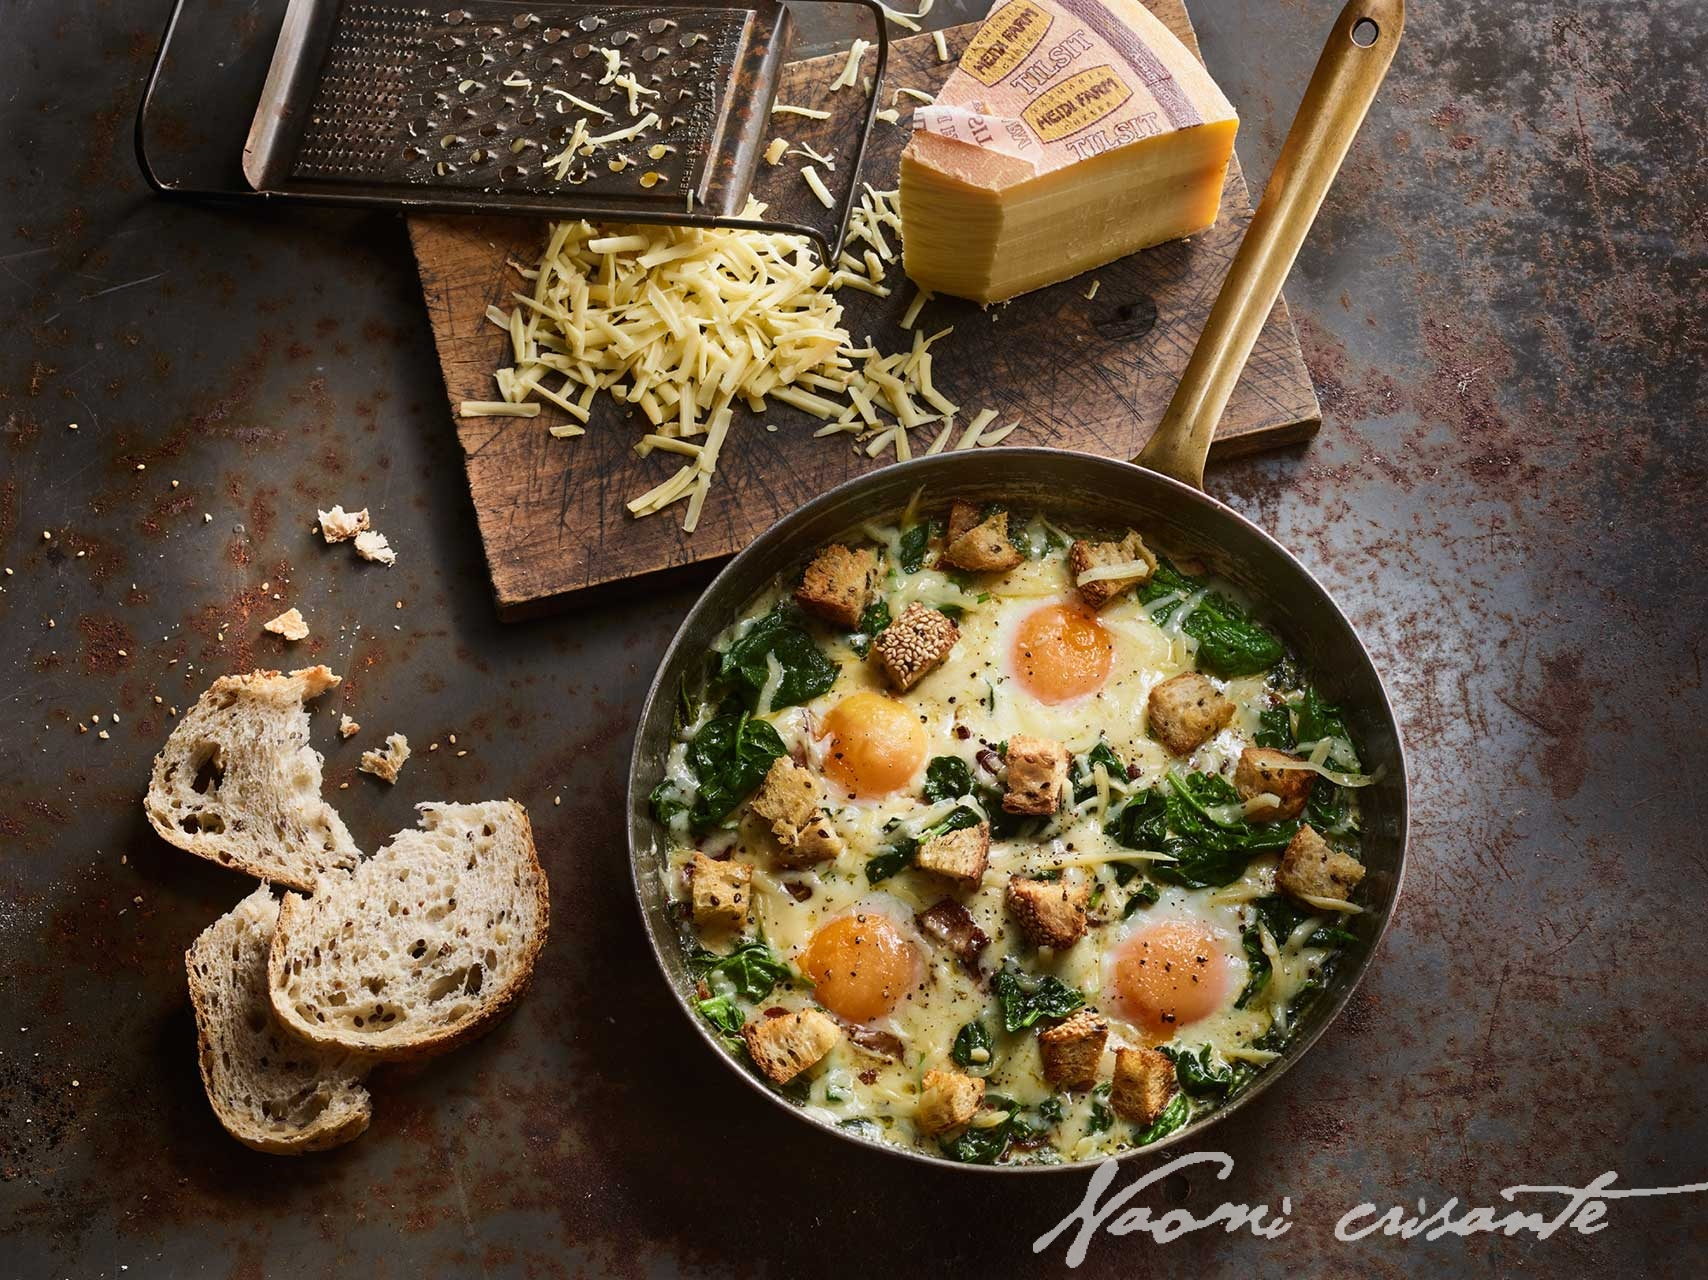 Spinach and Tilsit Baked Eggs with C